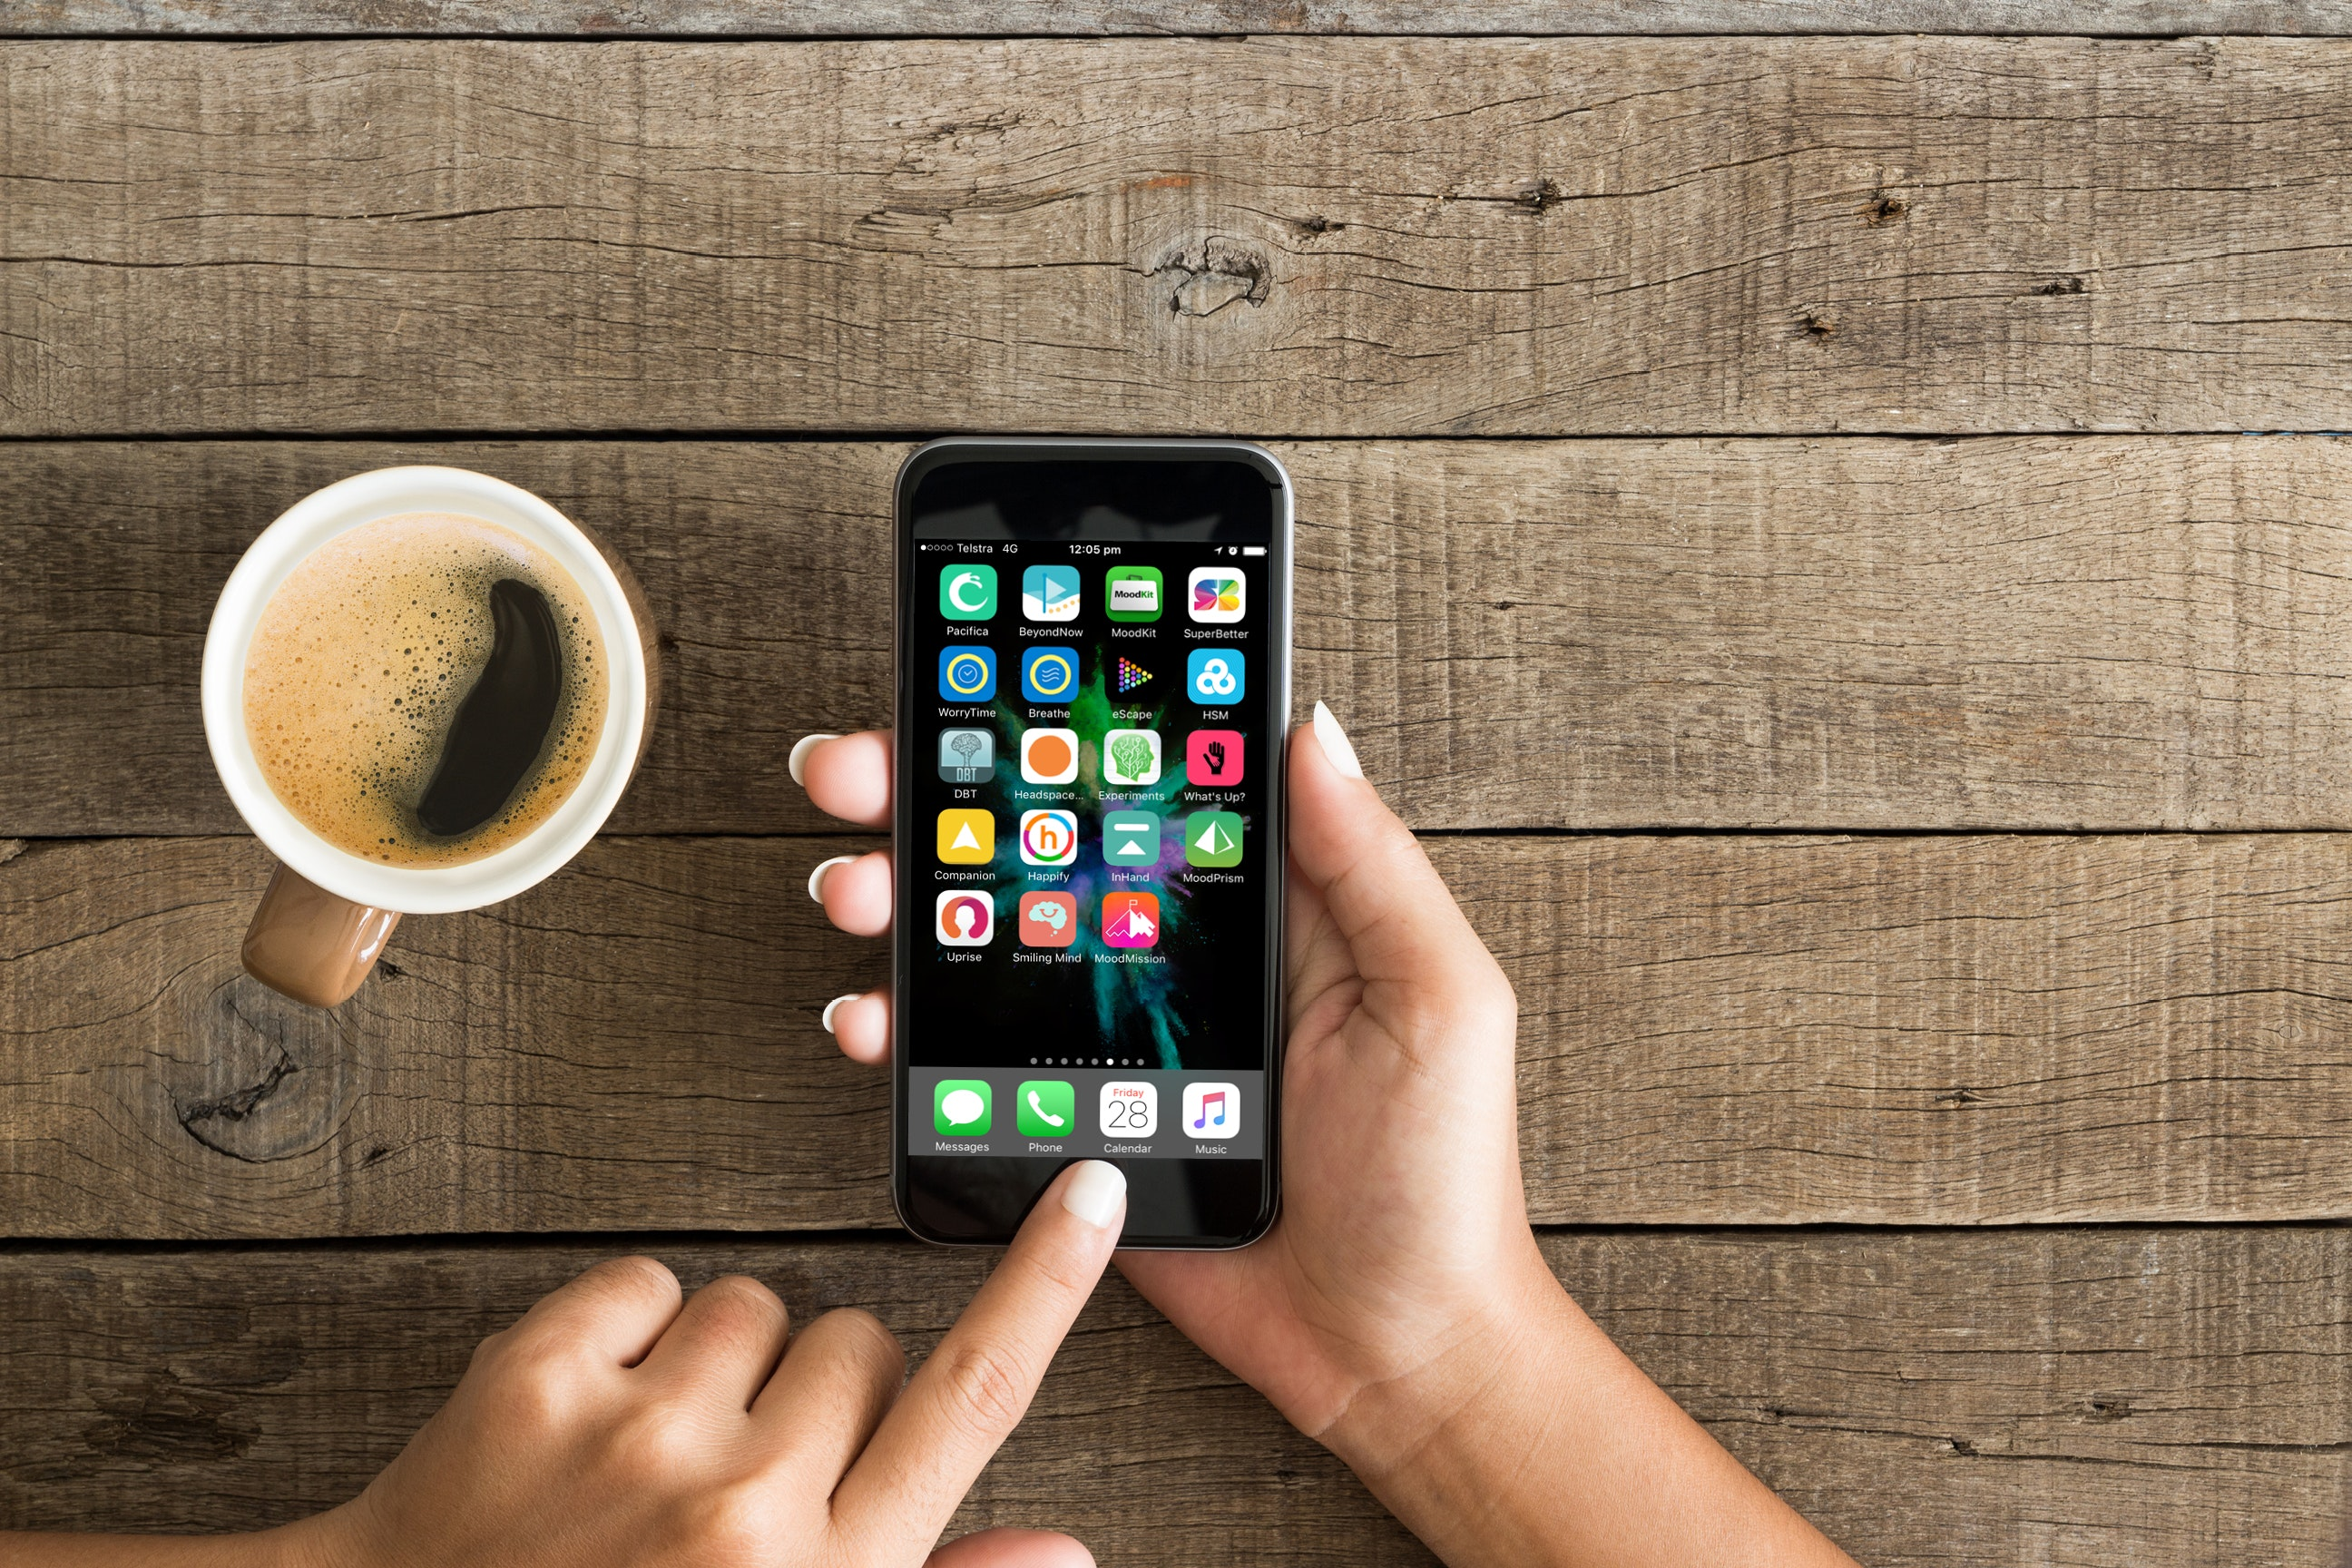 How to find a good app for mental health